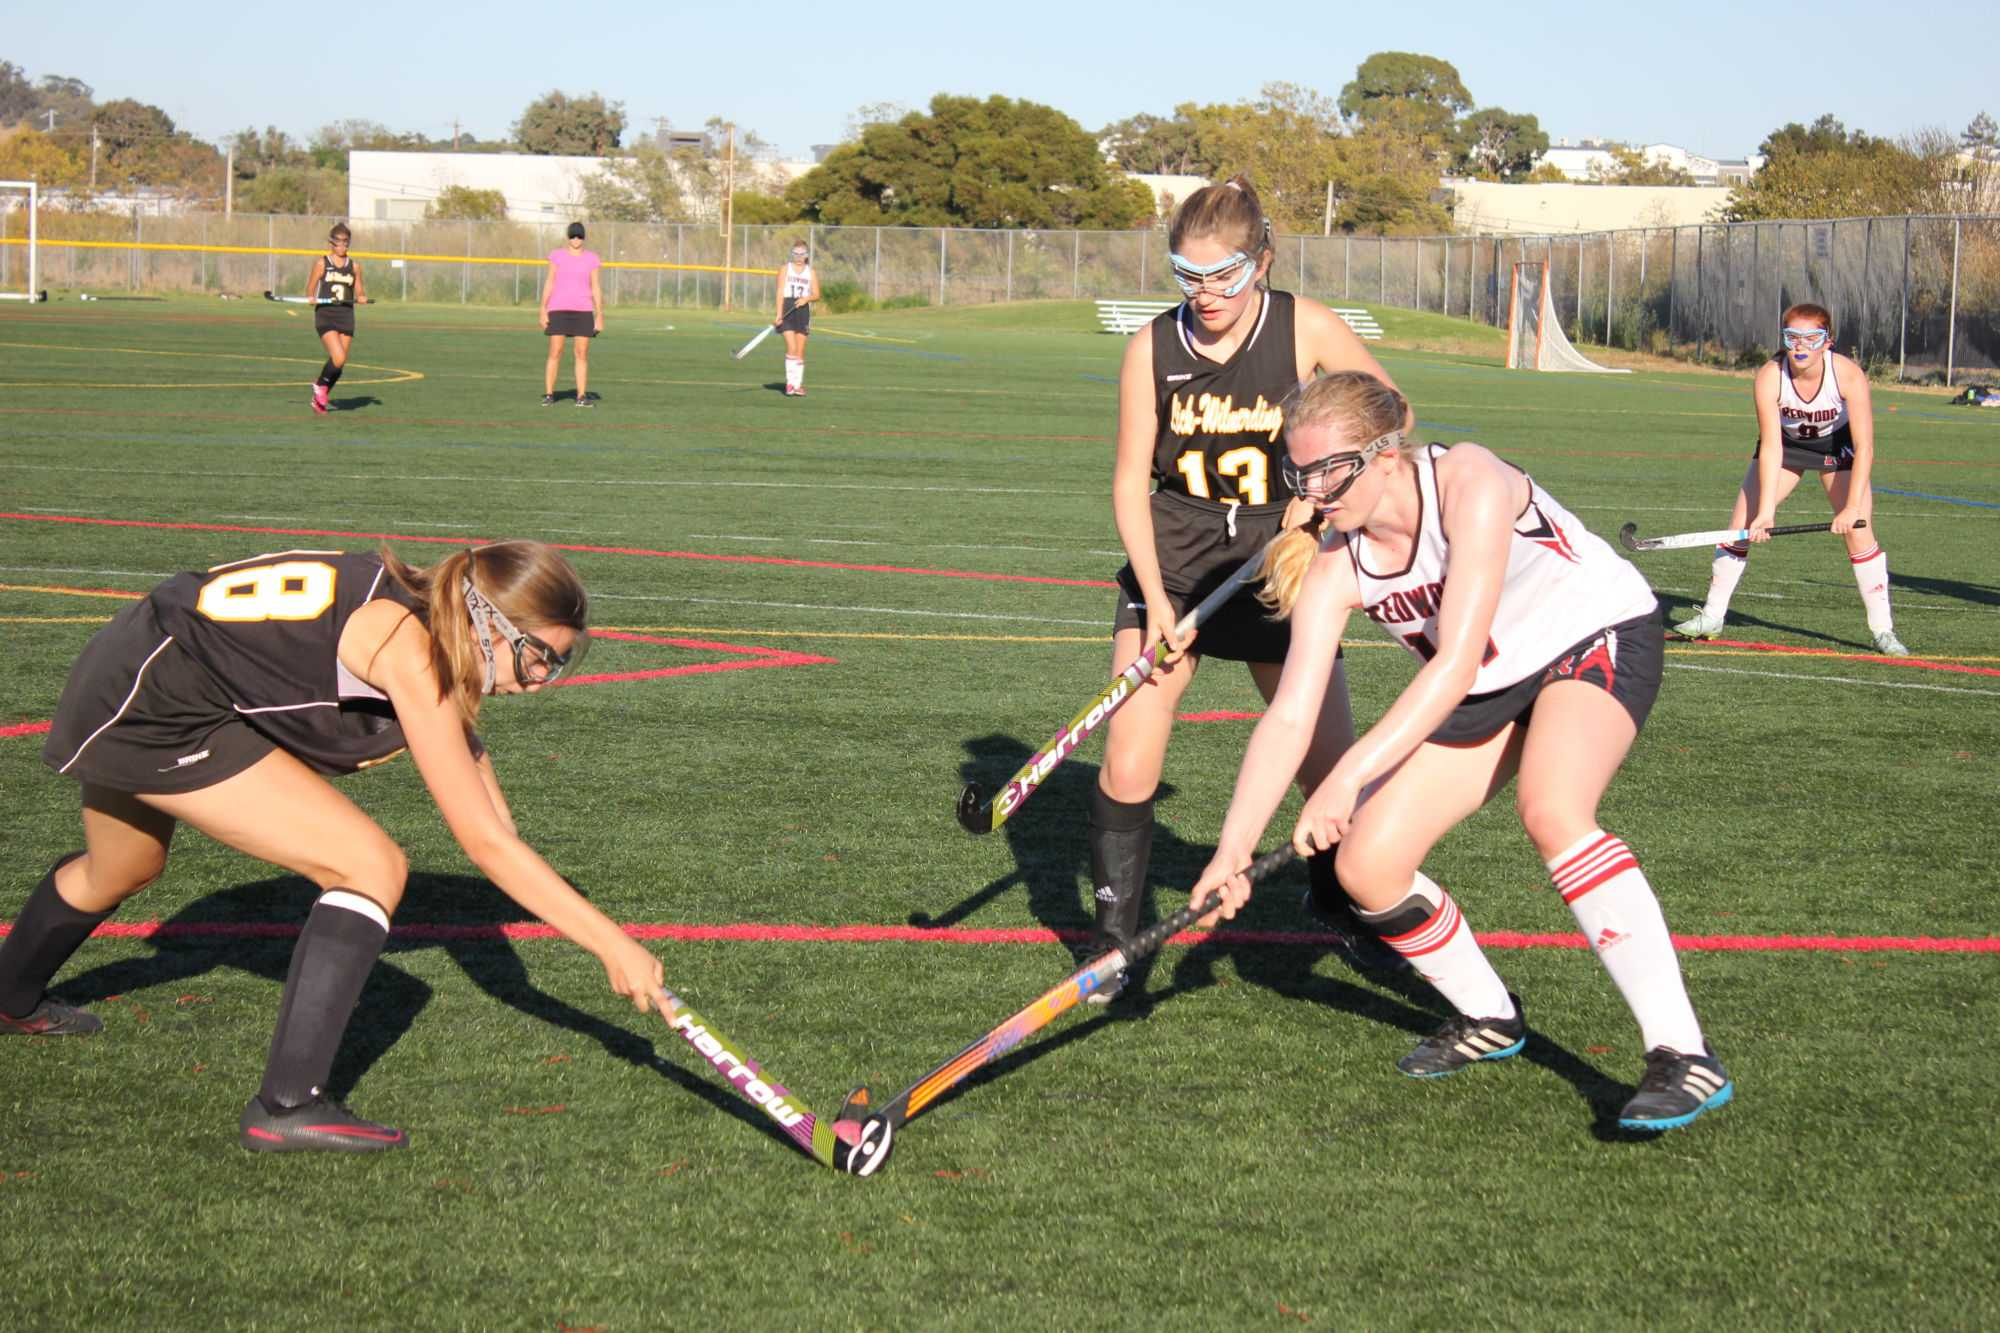 Girls' field hockey finishes the season strong with a 3-0 win